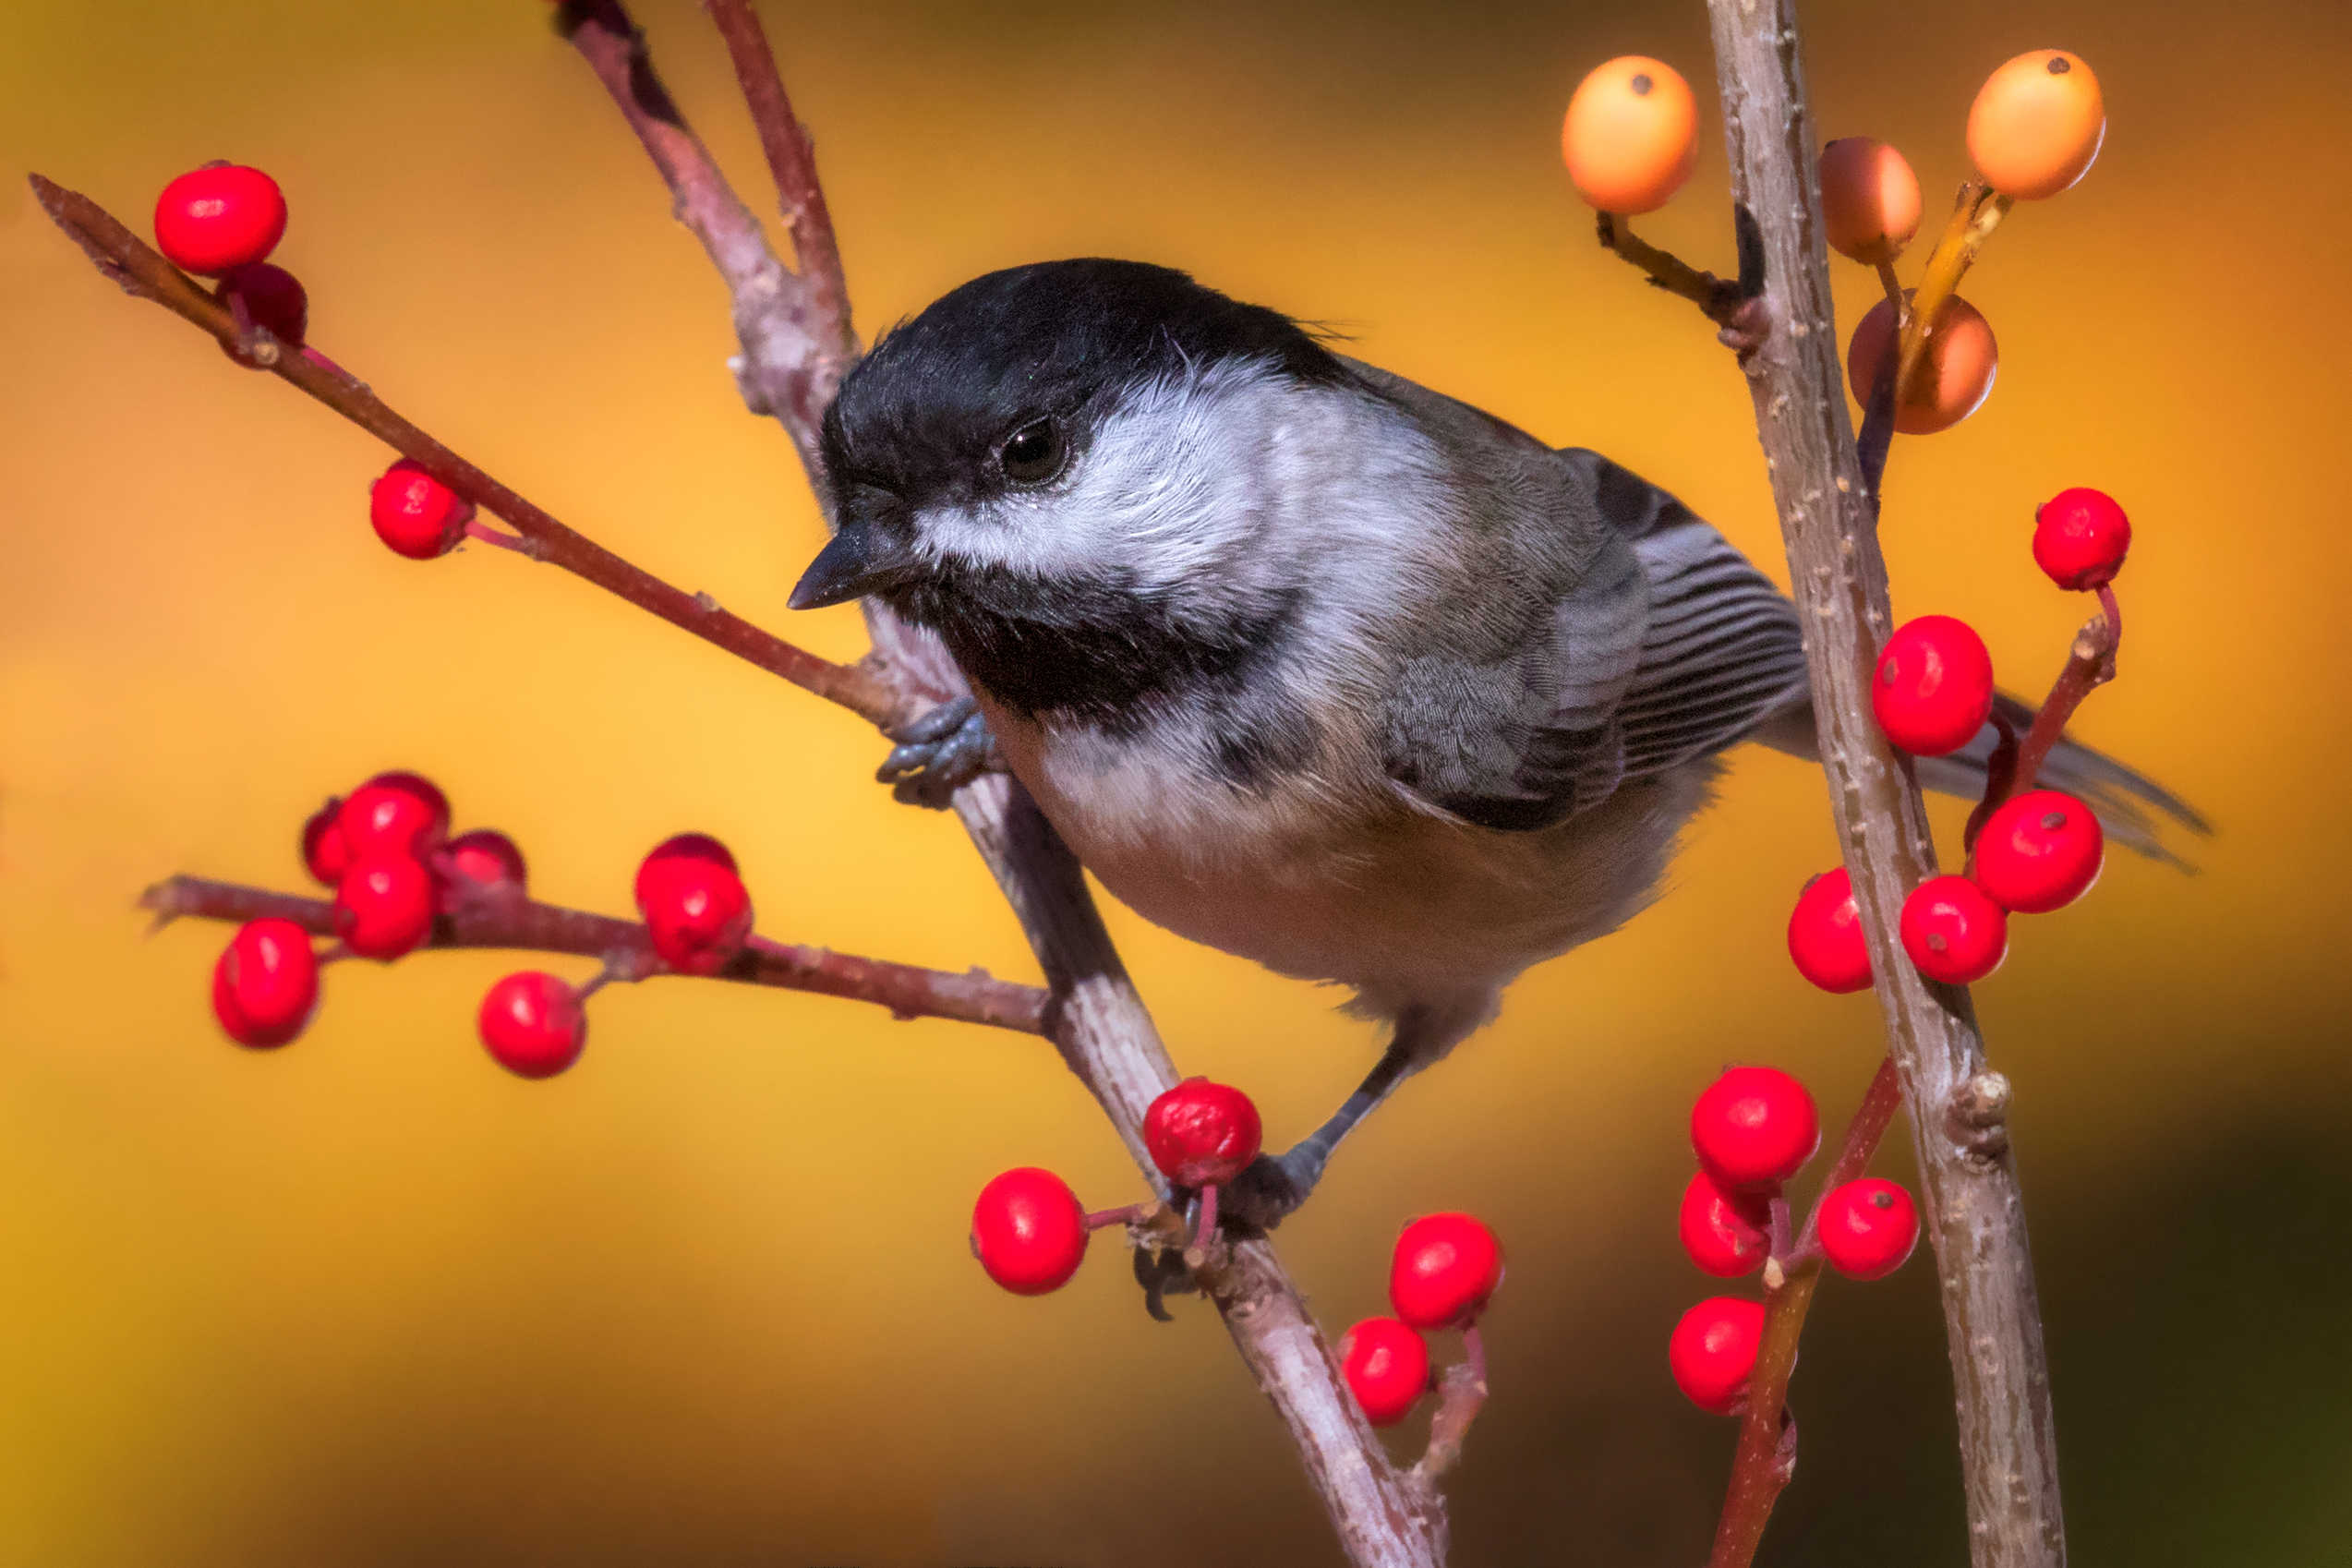 Black-capped Chickadee is a small nonmigratory song bird. It feeds insects, seeds and berries.